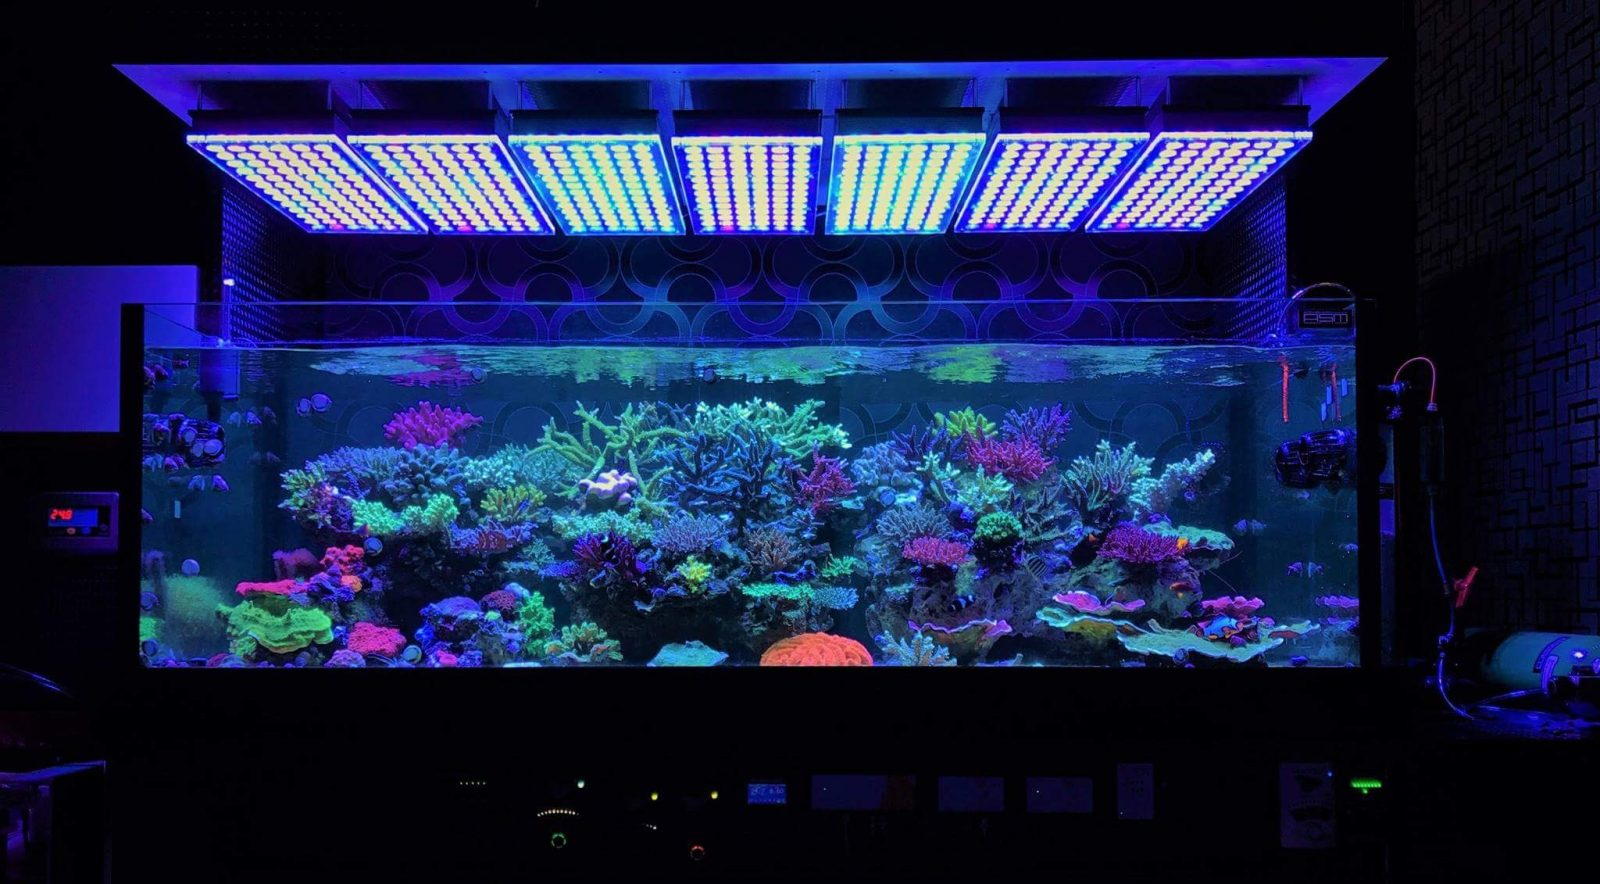 Incrível-Reef-aquarium-LED-light